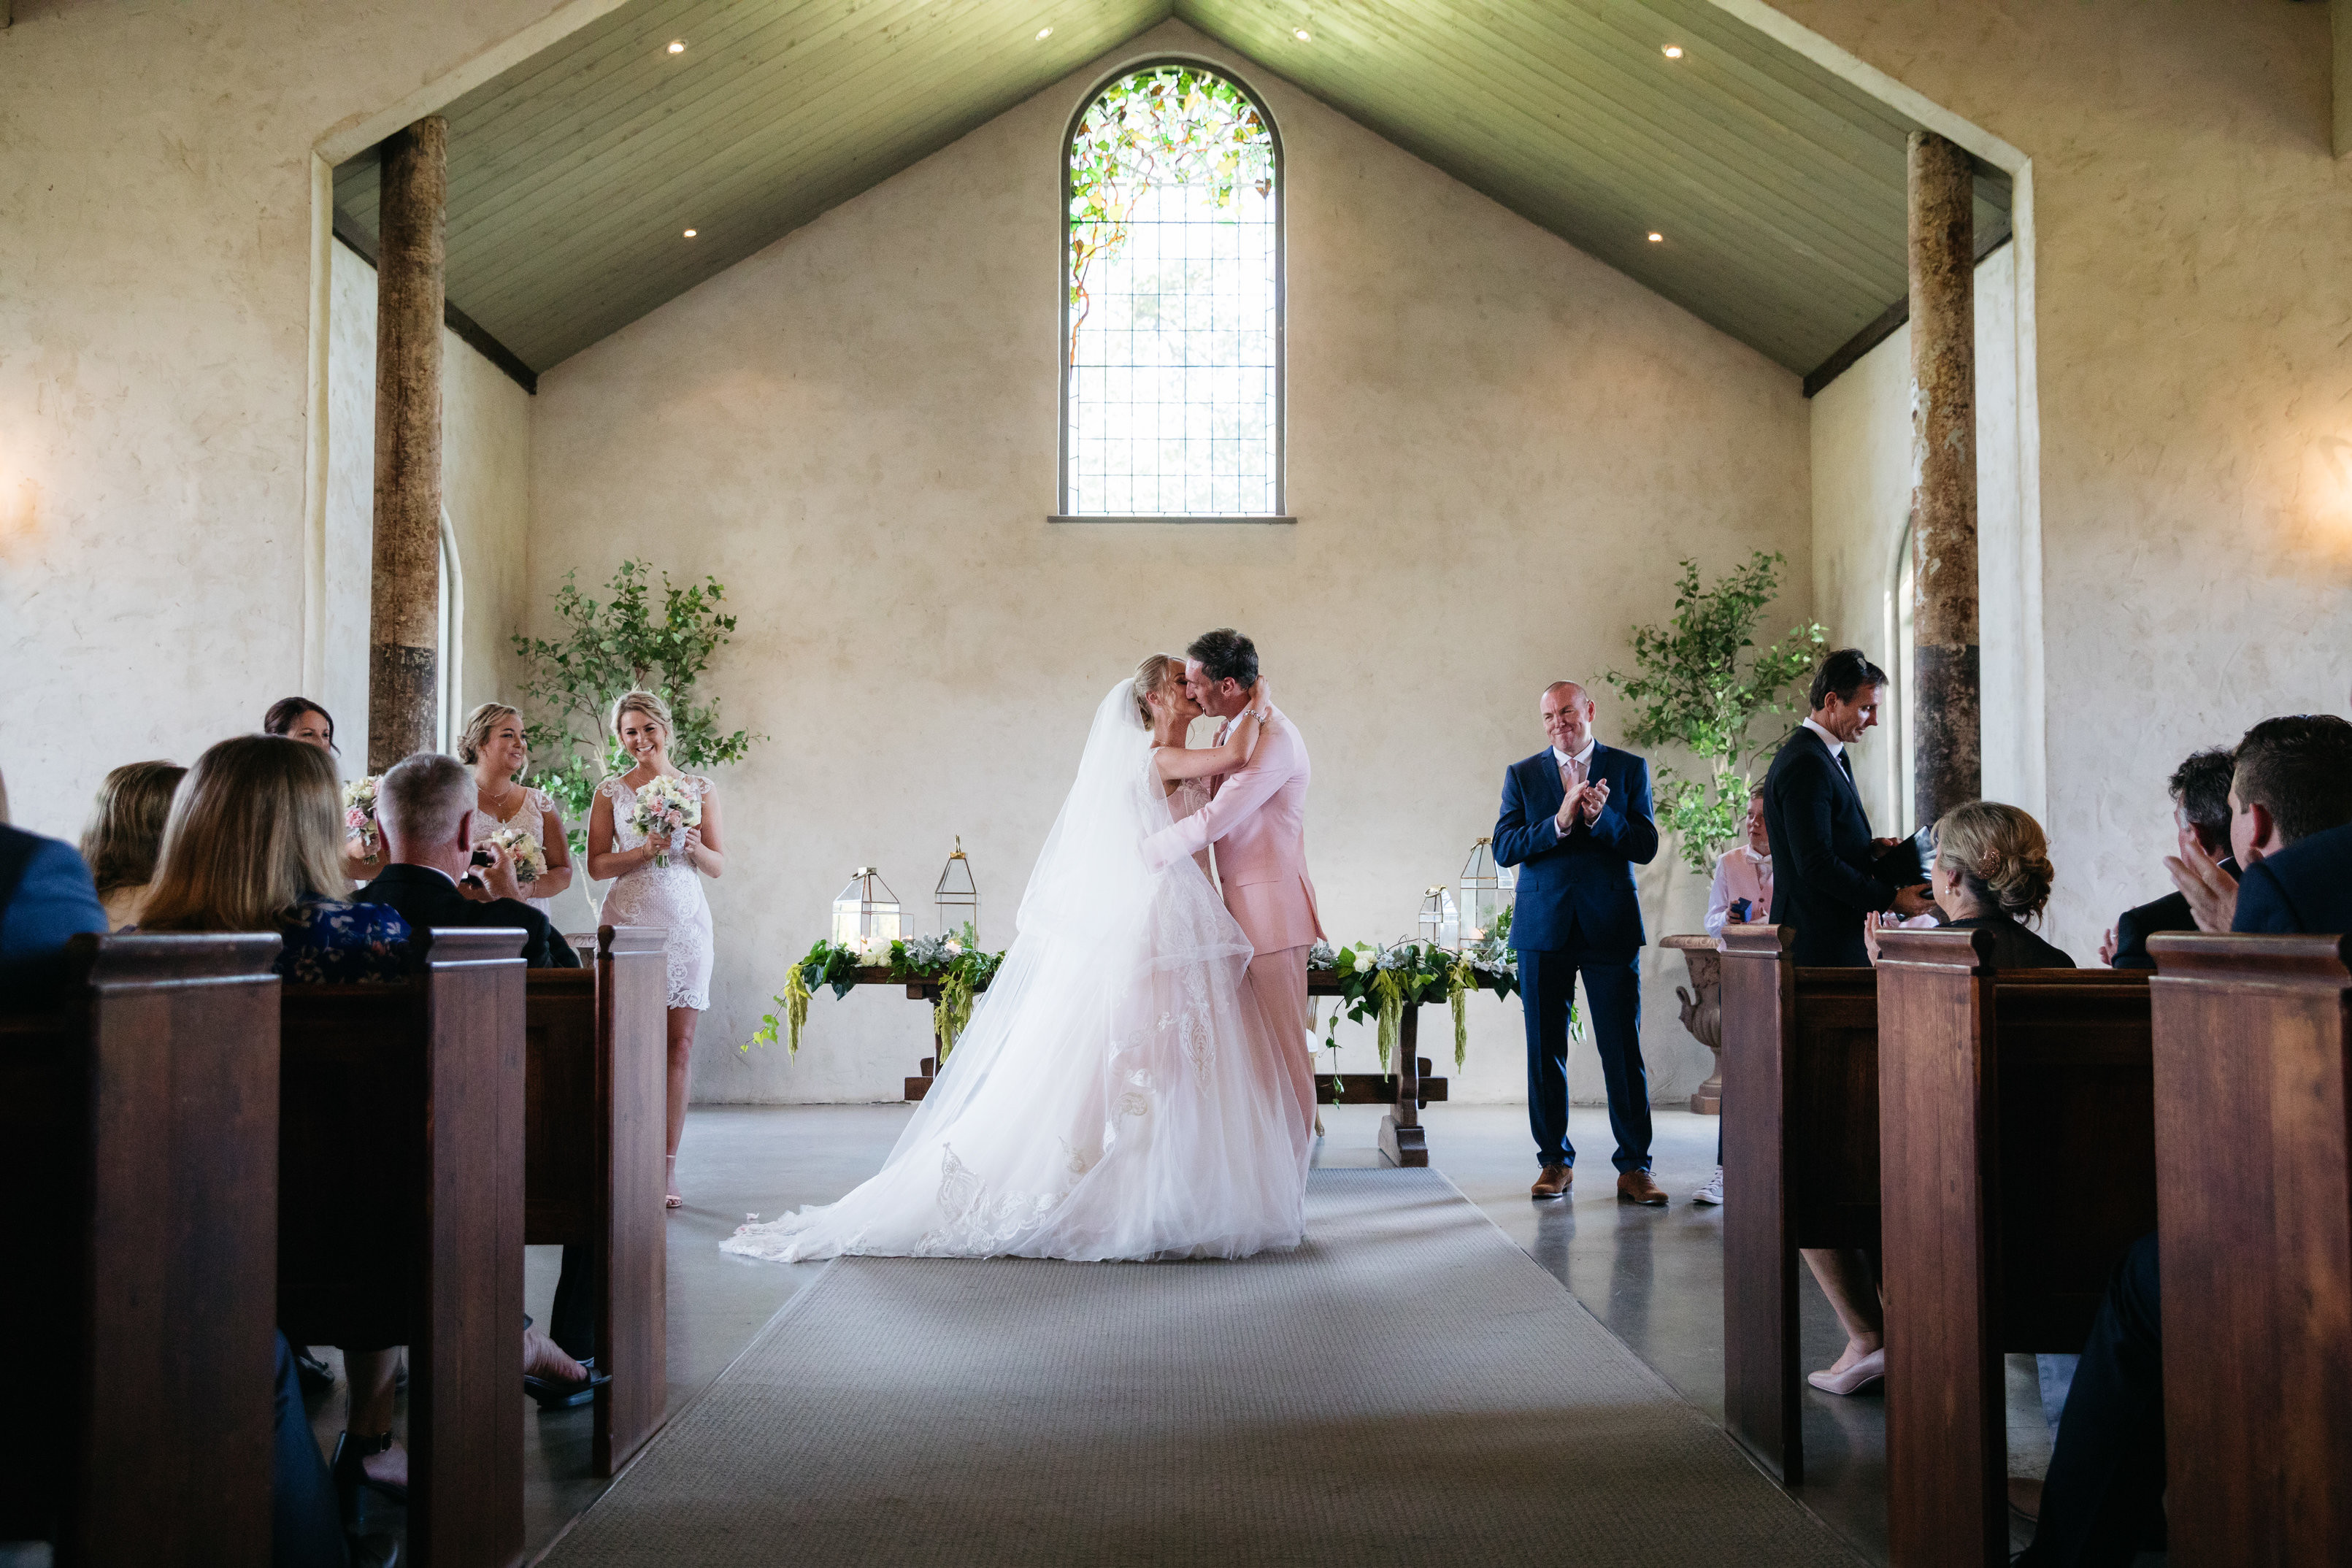 australia wedding, wedding dance, wedding inspo, wedding ideas